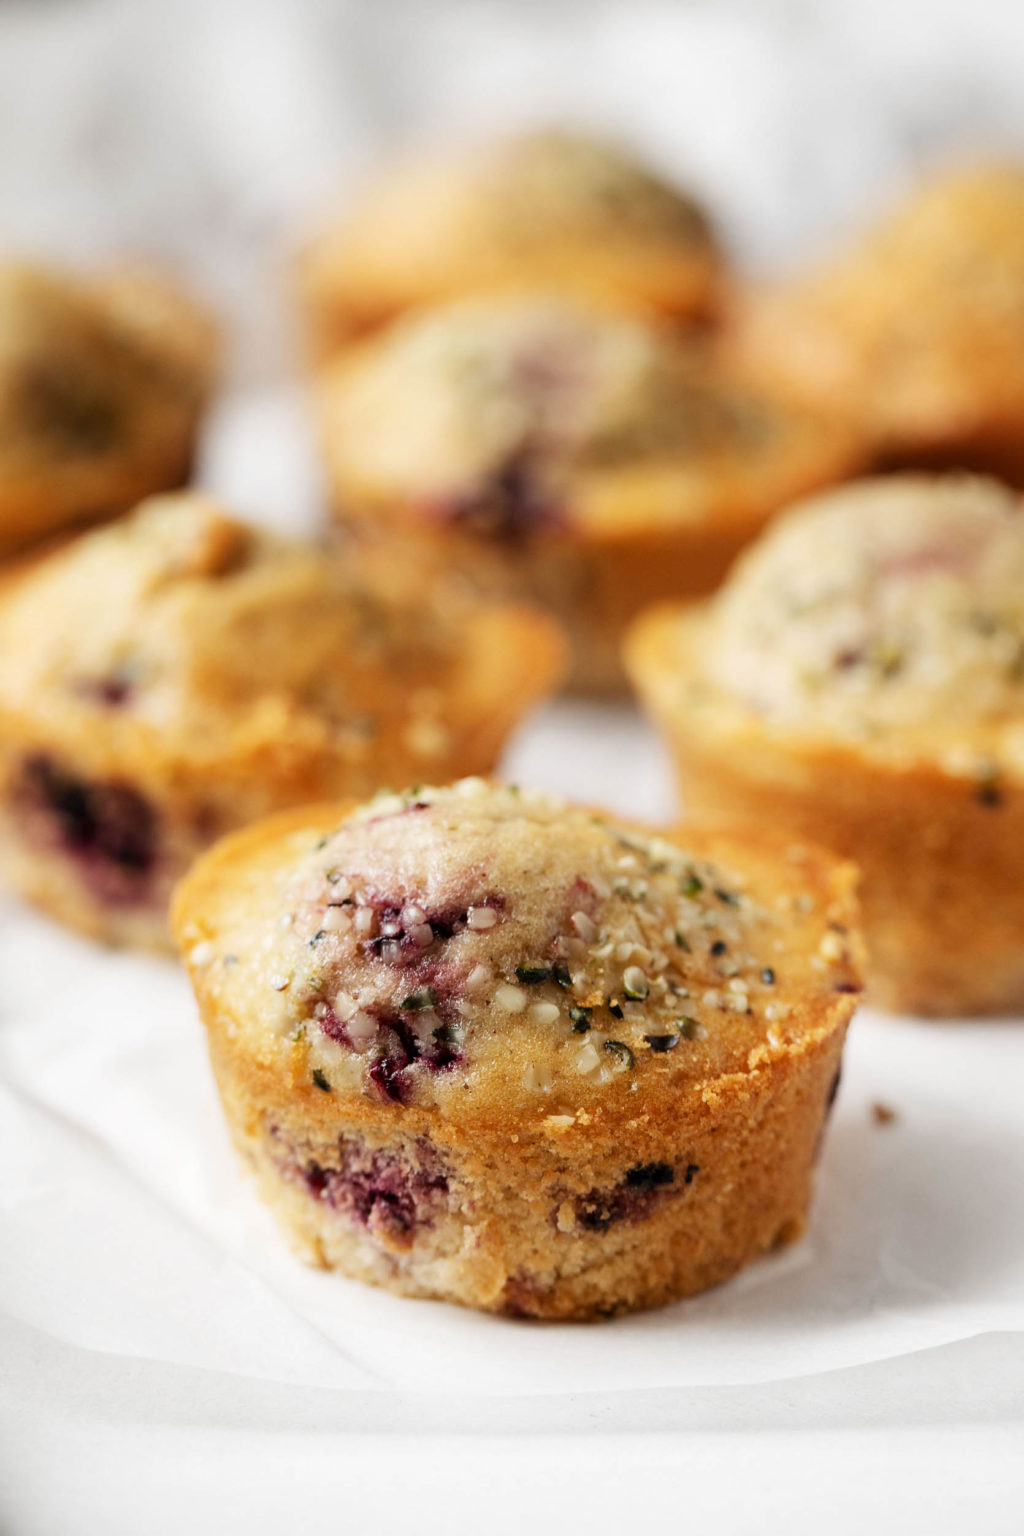 A close up photograph of a freshly baked vegan berry spelt muffin, topped with nutritious hemp seeds.